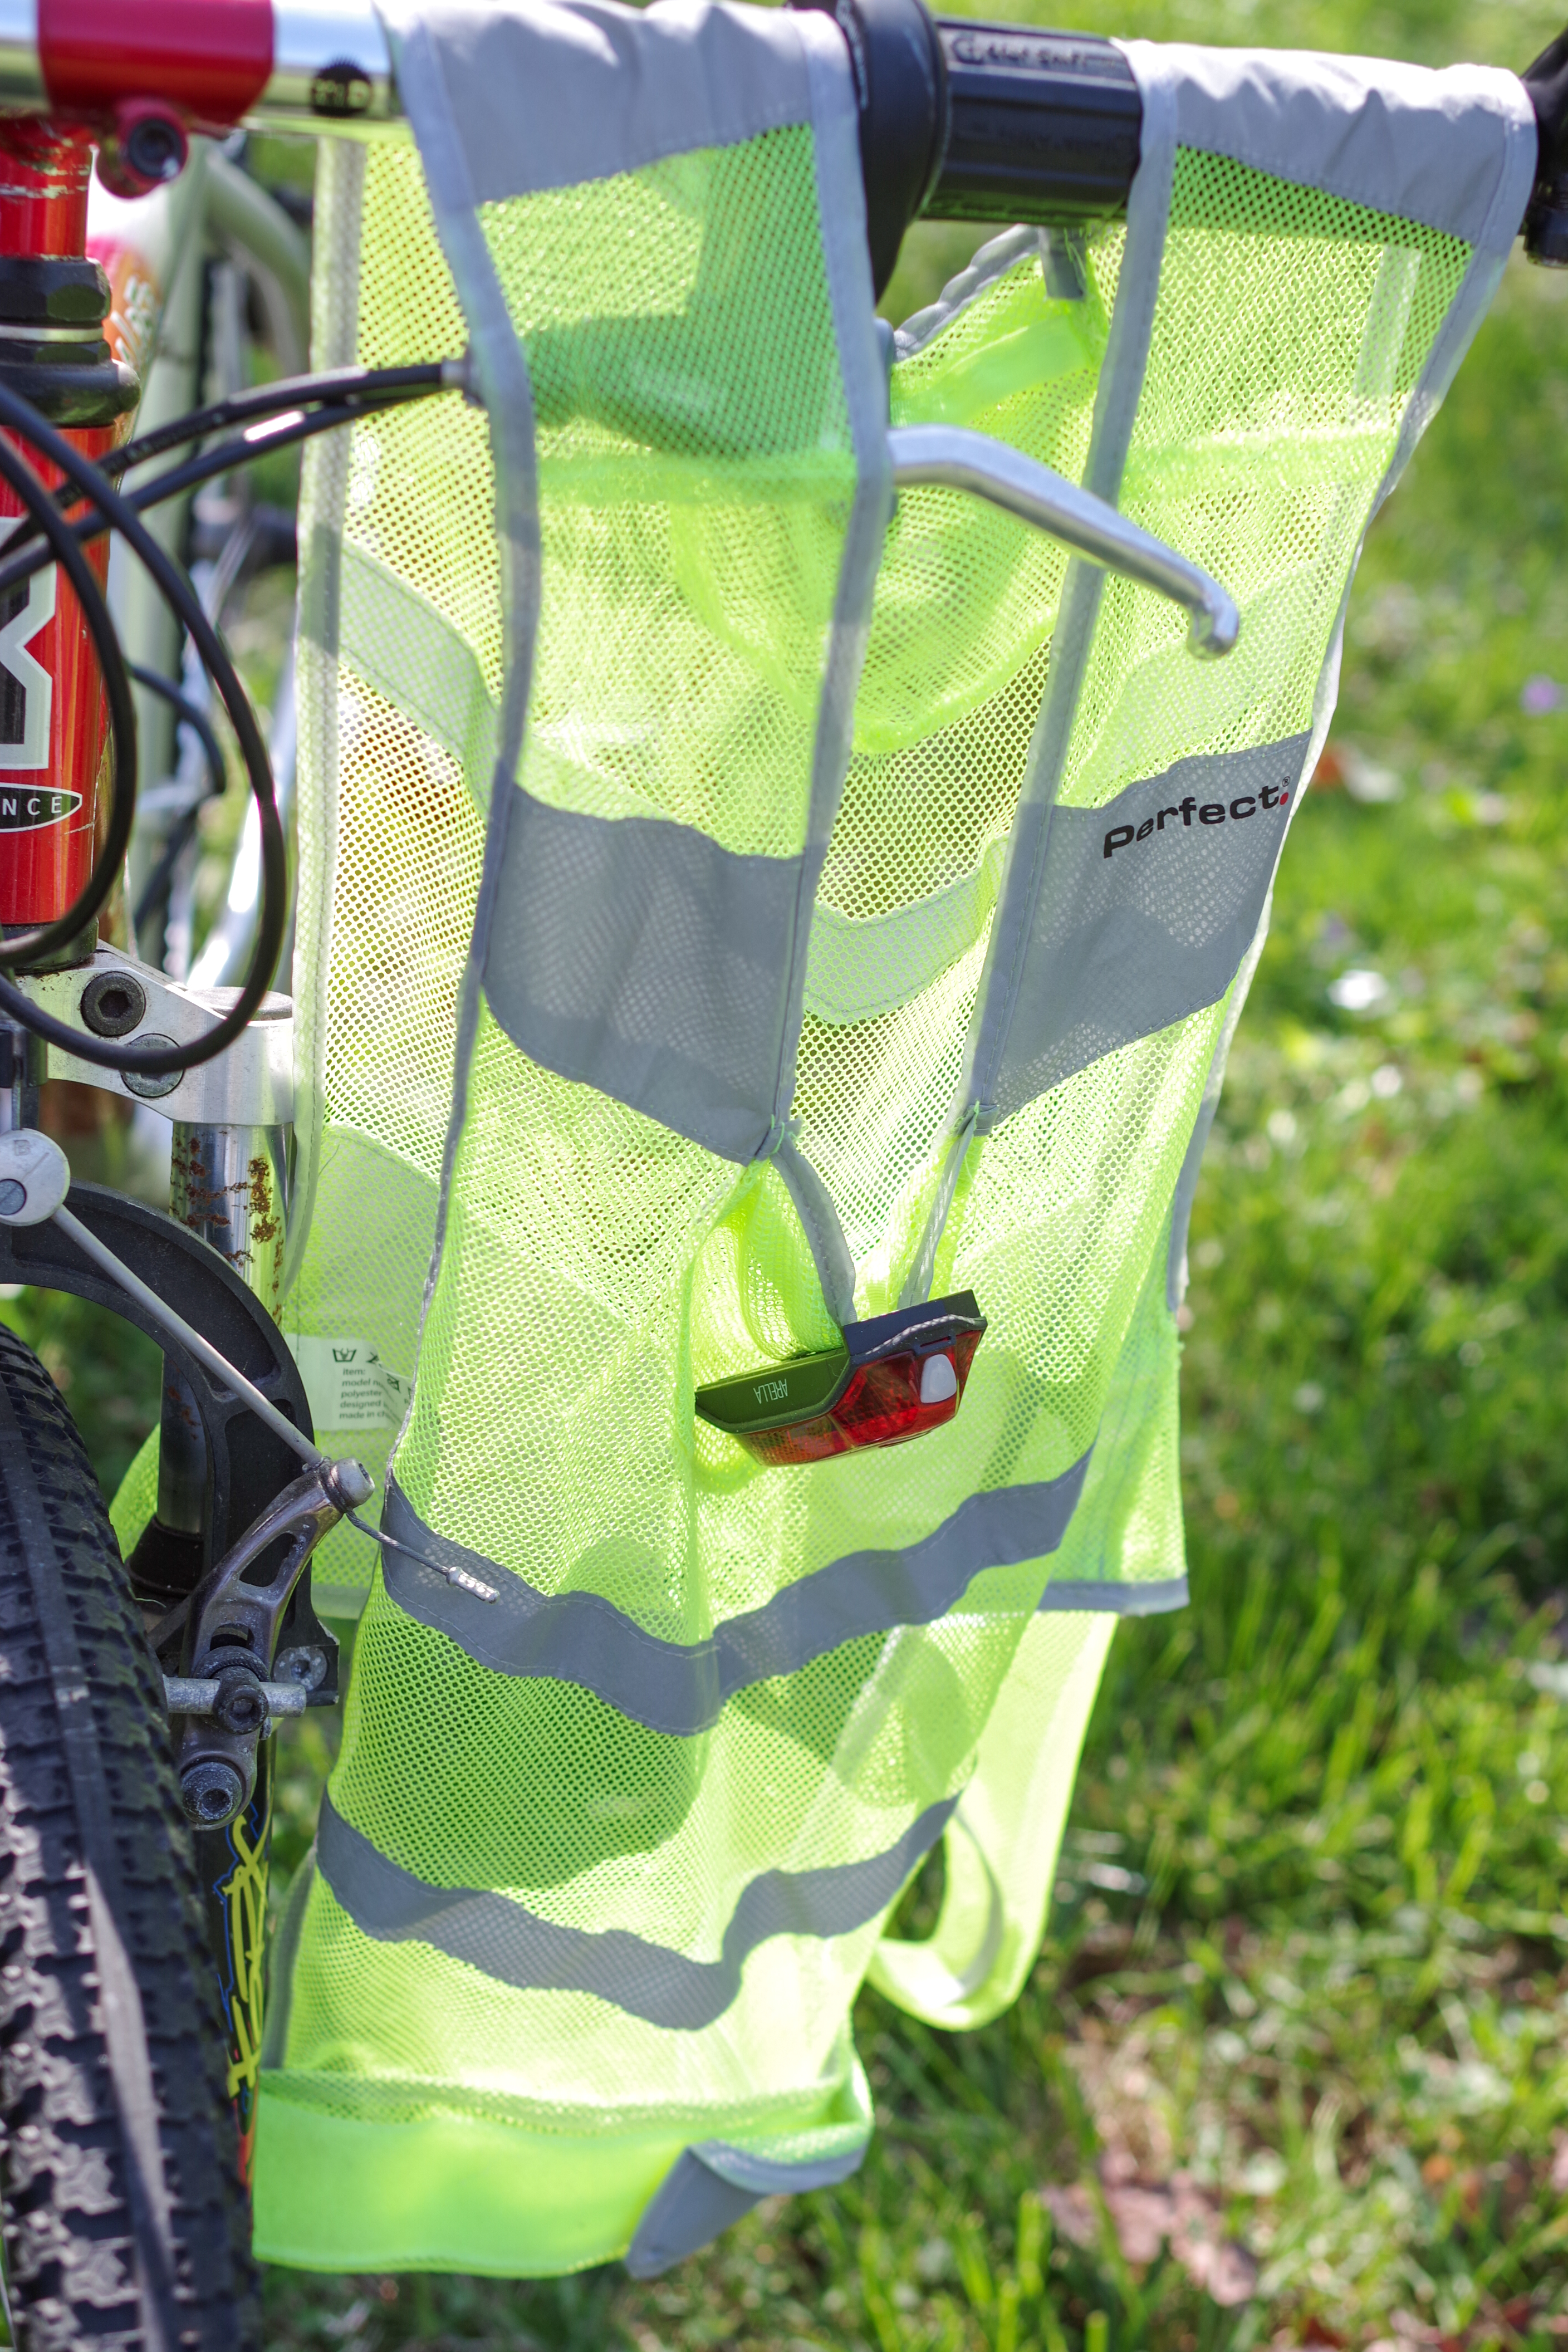 Reflective bicycling safety vests with detachable lights can improve the visibility of the bicyclist to motor vehicles as well as to pedestrians. This particular vest is available for rent through Jill + Ian's Bicycle Rentals. Photo © Jillian Regan 2018